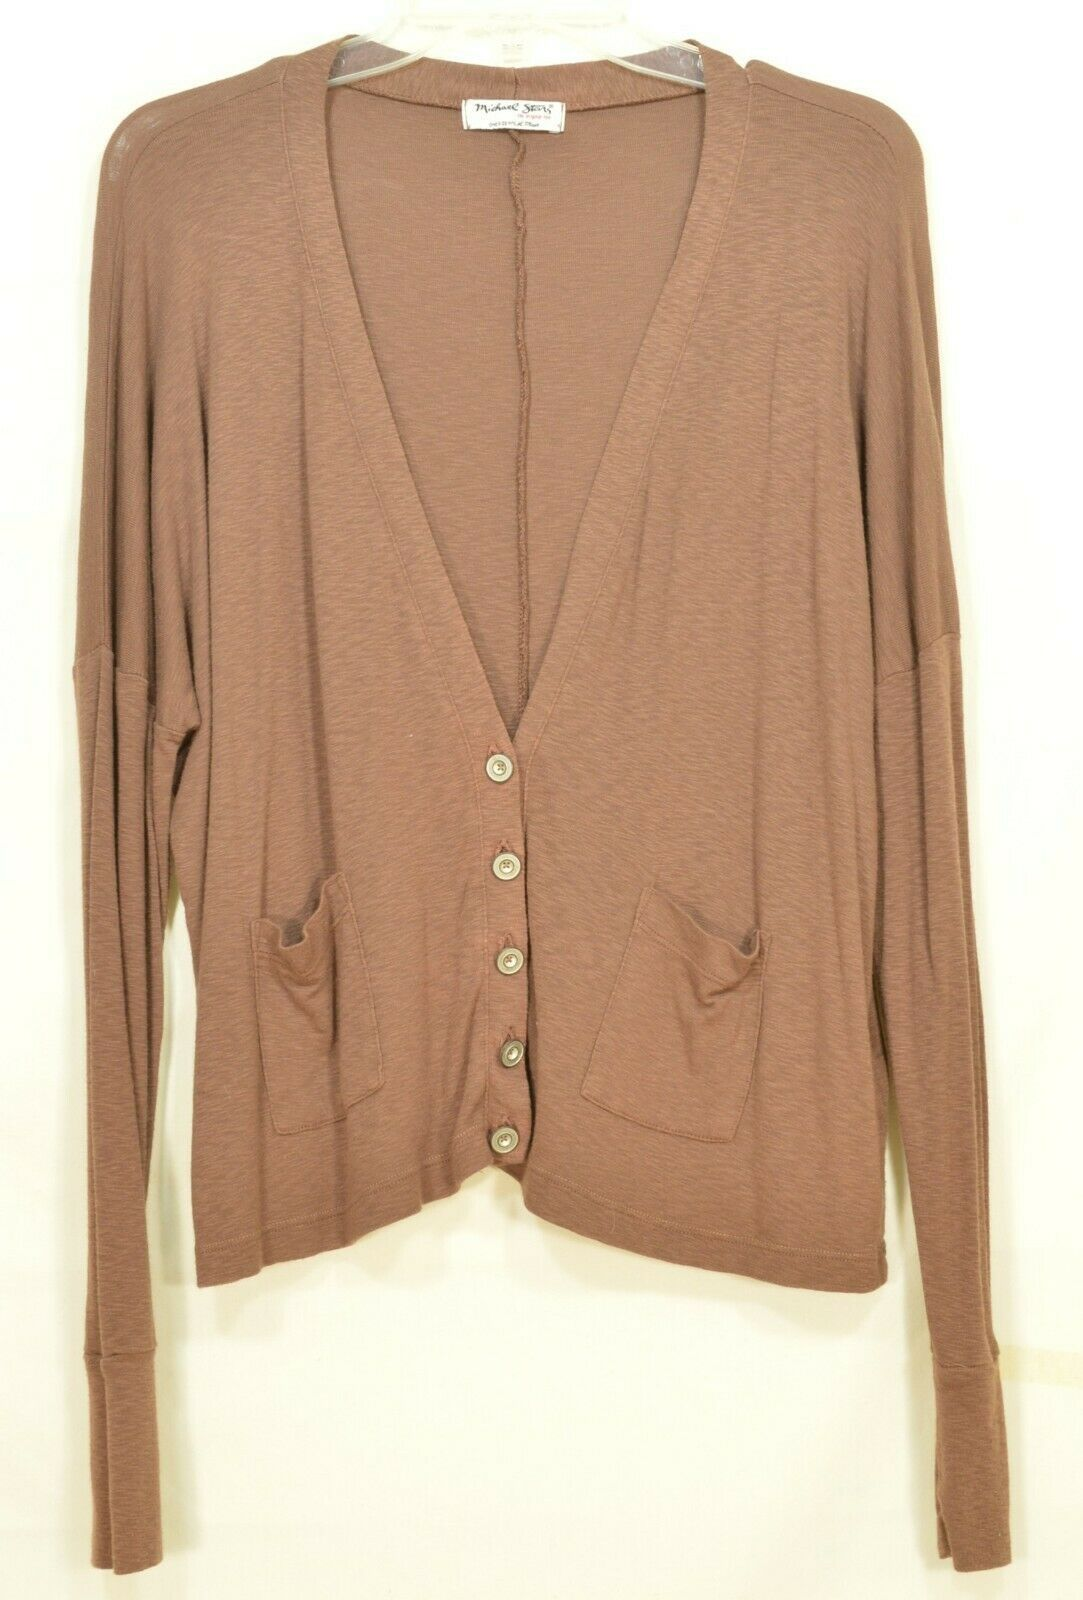 Michael Stars sweater OSFM brown cardigan dropped shoulders lightweight fall USA image 9